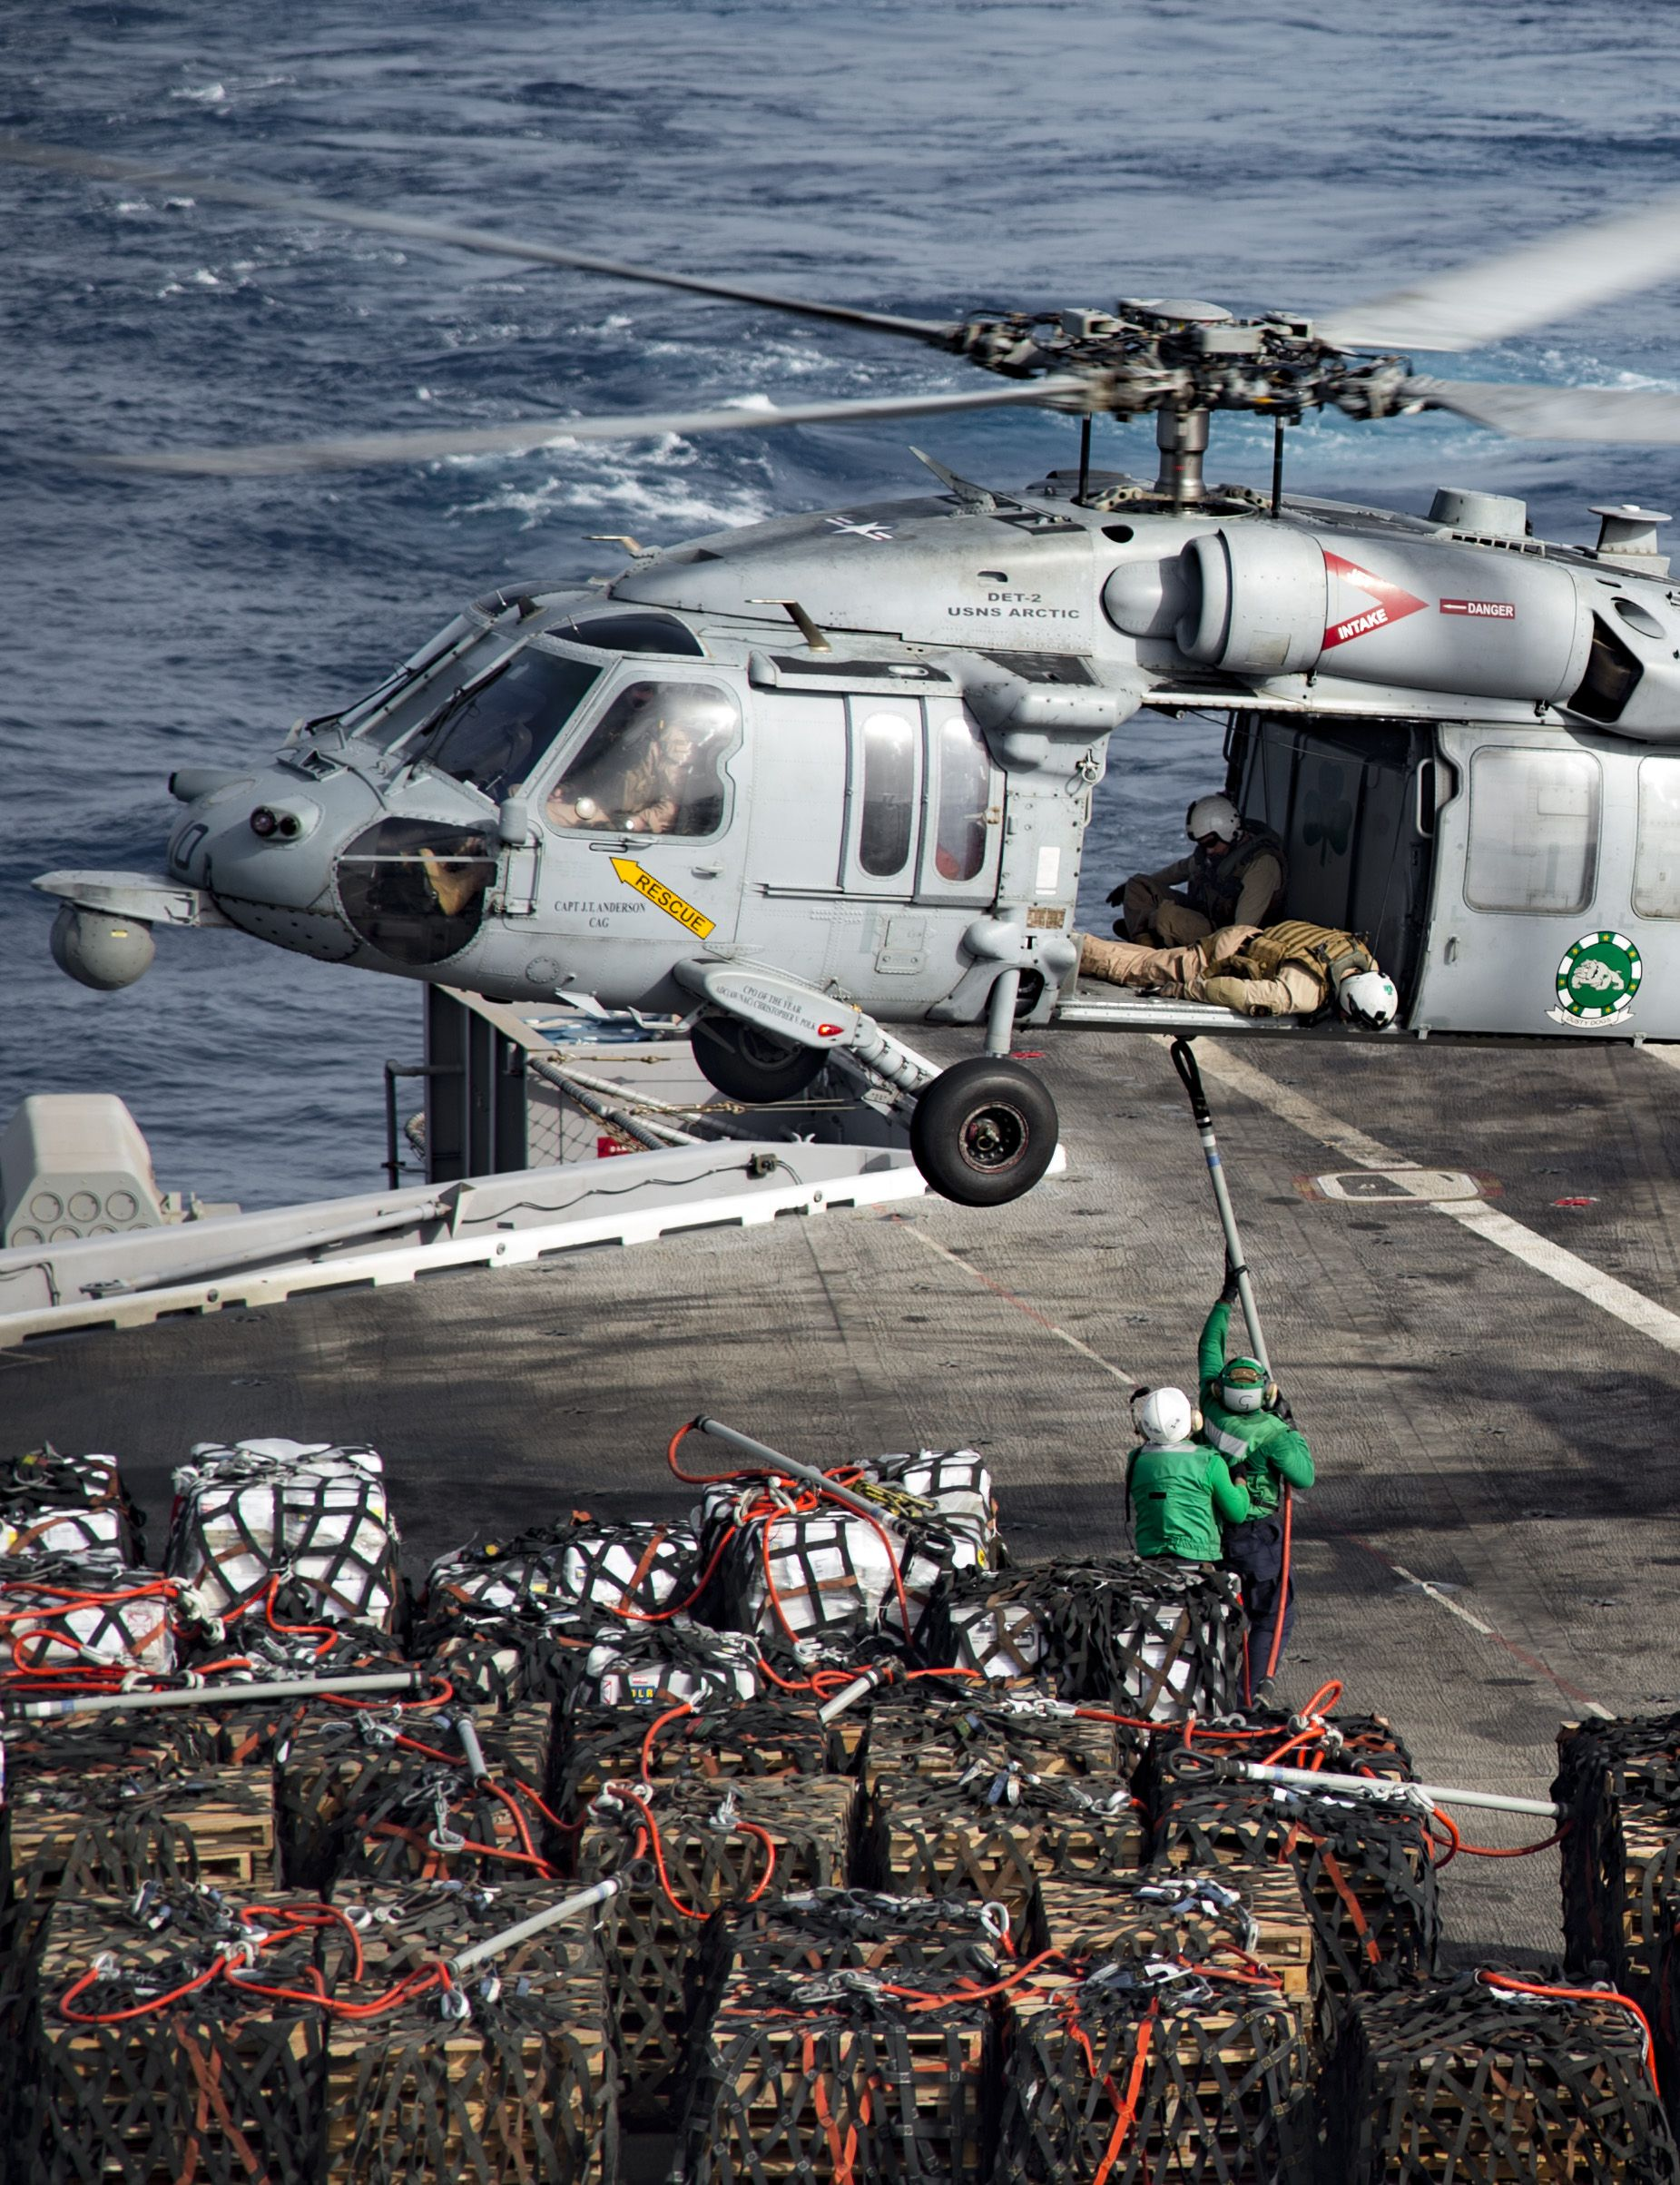 GULF OF OMAN (July 20, 2016) An MH-60S Sea Hawk helicopter assigned to the Dusty Dogs of Helicopter Sea Combat Squadron (HSC) 7 unloads cargo to the flight deck of the aircraft carrier USS Dwight D. Eisenhower (CVN 69) during a replenishment-at-sea with the fast-combat support ship USNS Arctic (T-AOE 8). Dwight D. Eisenhower and its Carrier Strike Group are deployed in support of Operation Inherent Resolve, maritime security operations and theater security cooperation efforts in U.S. 5th…